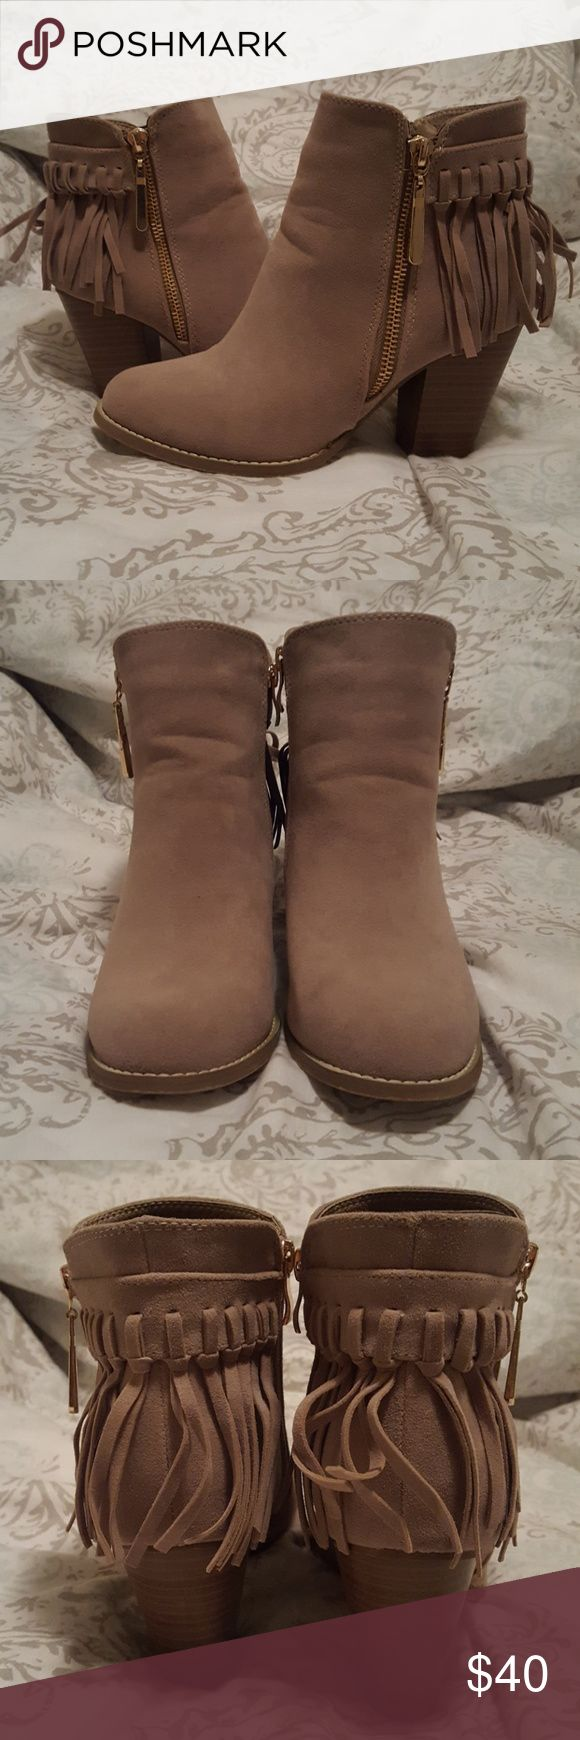 Taupe colored size 7.5 fringe ankle boots